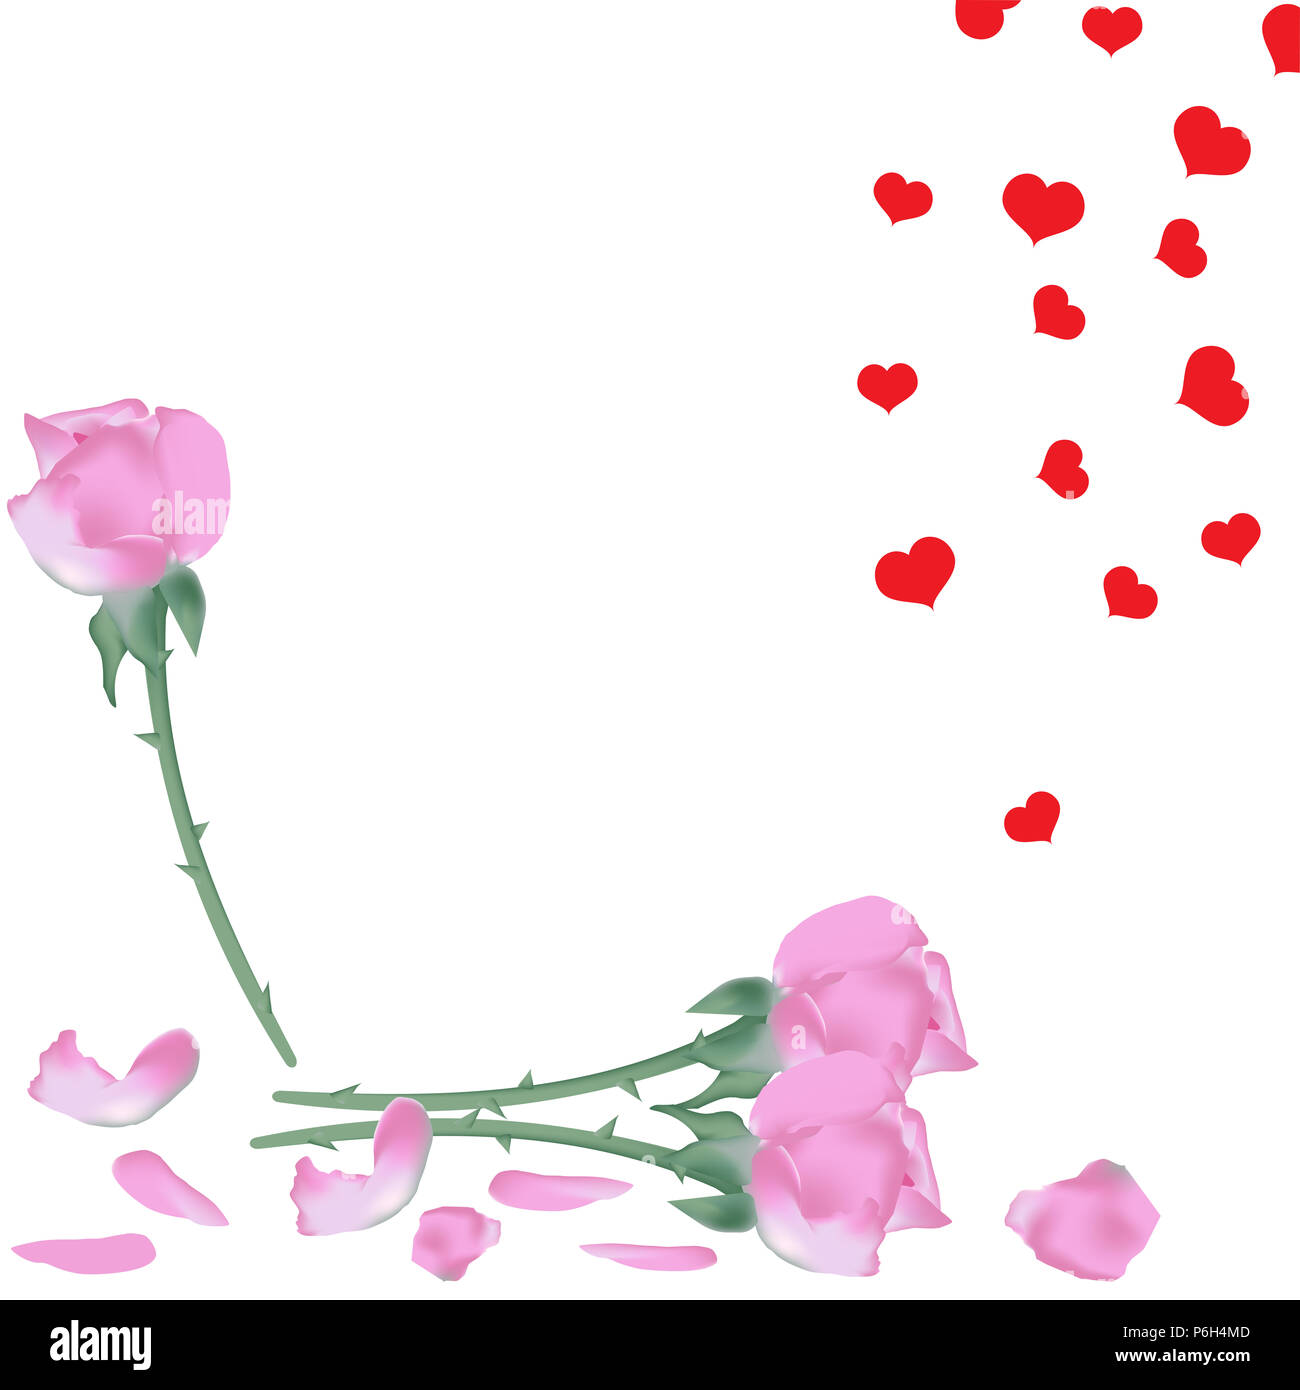 Pink Roses Flowers With Fallen Petals And Rain Of Red Hearts Vector